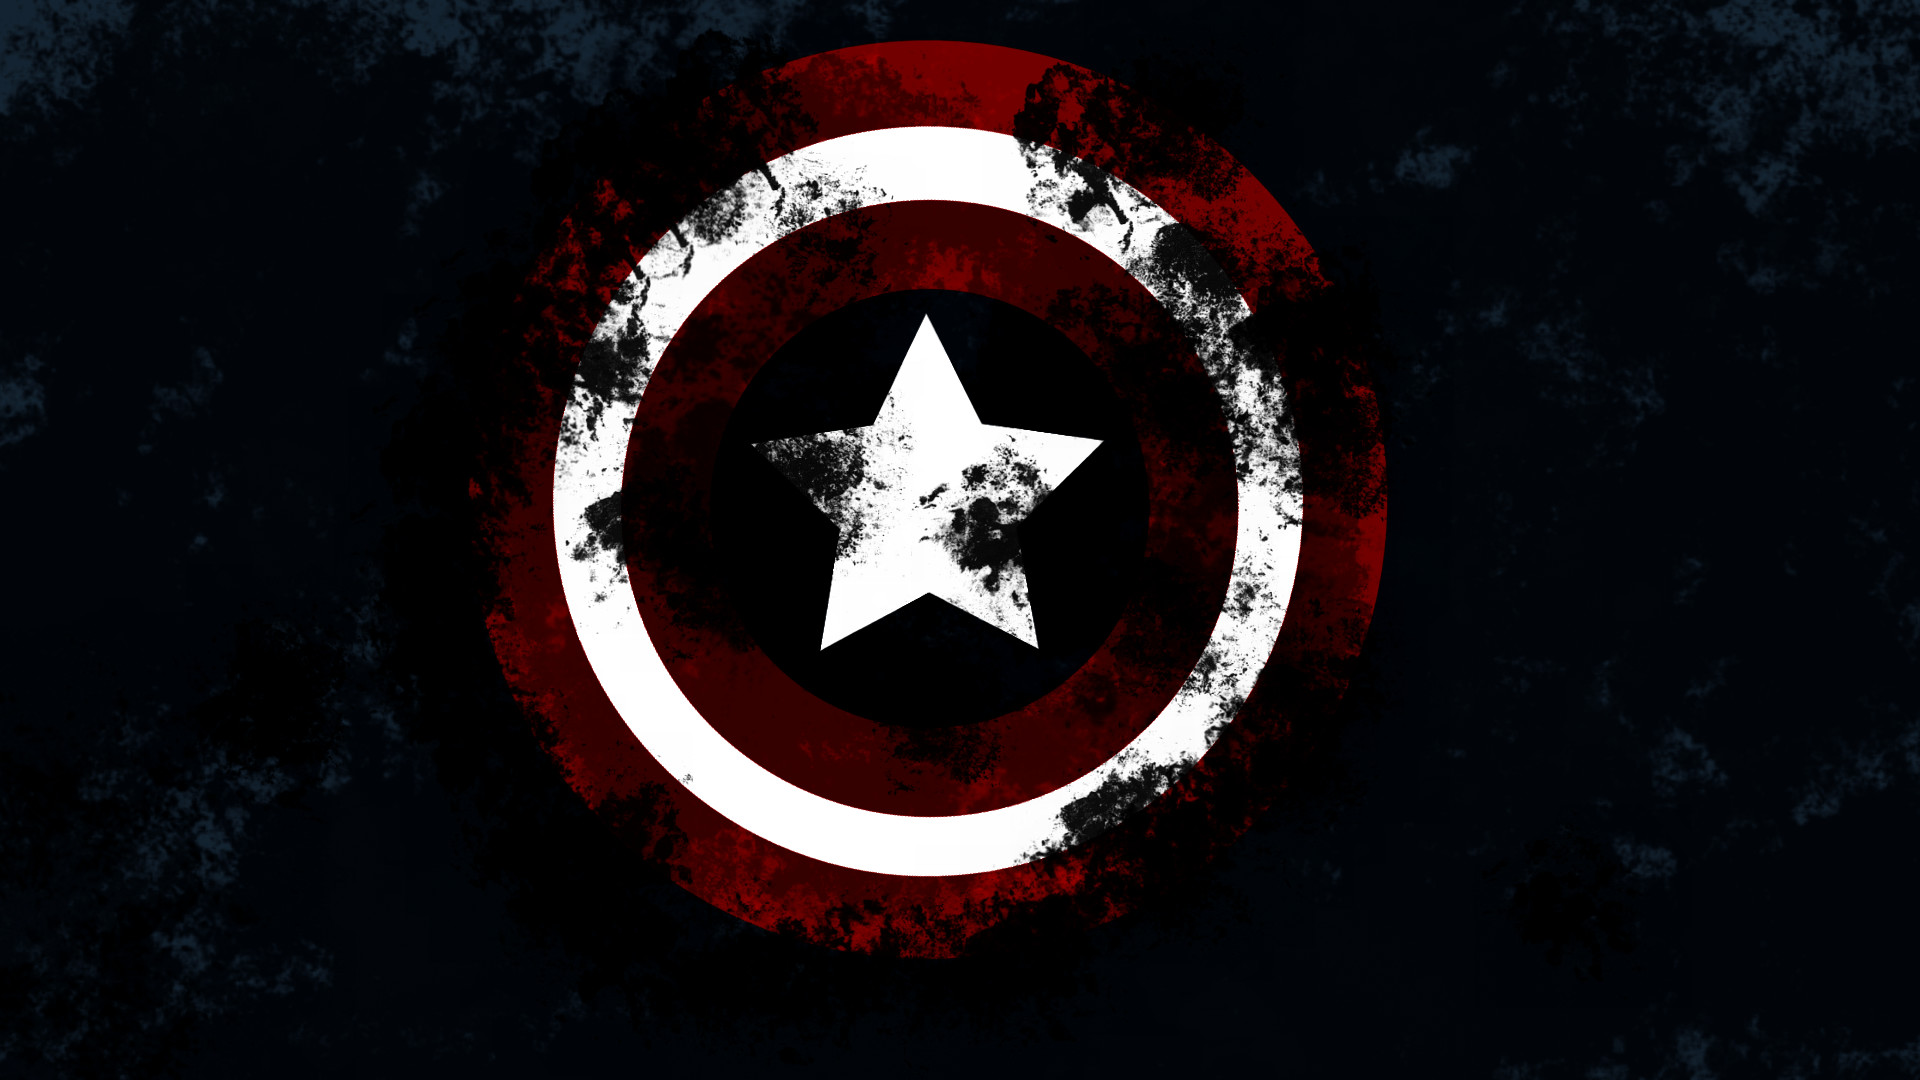 Captain America Wallpaper HD 81 images 1920x1080